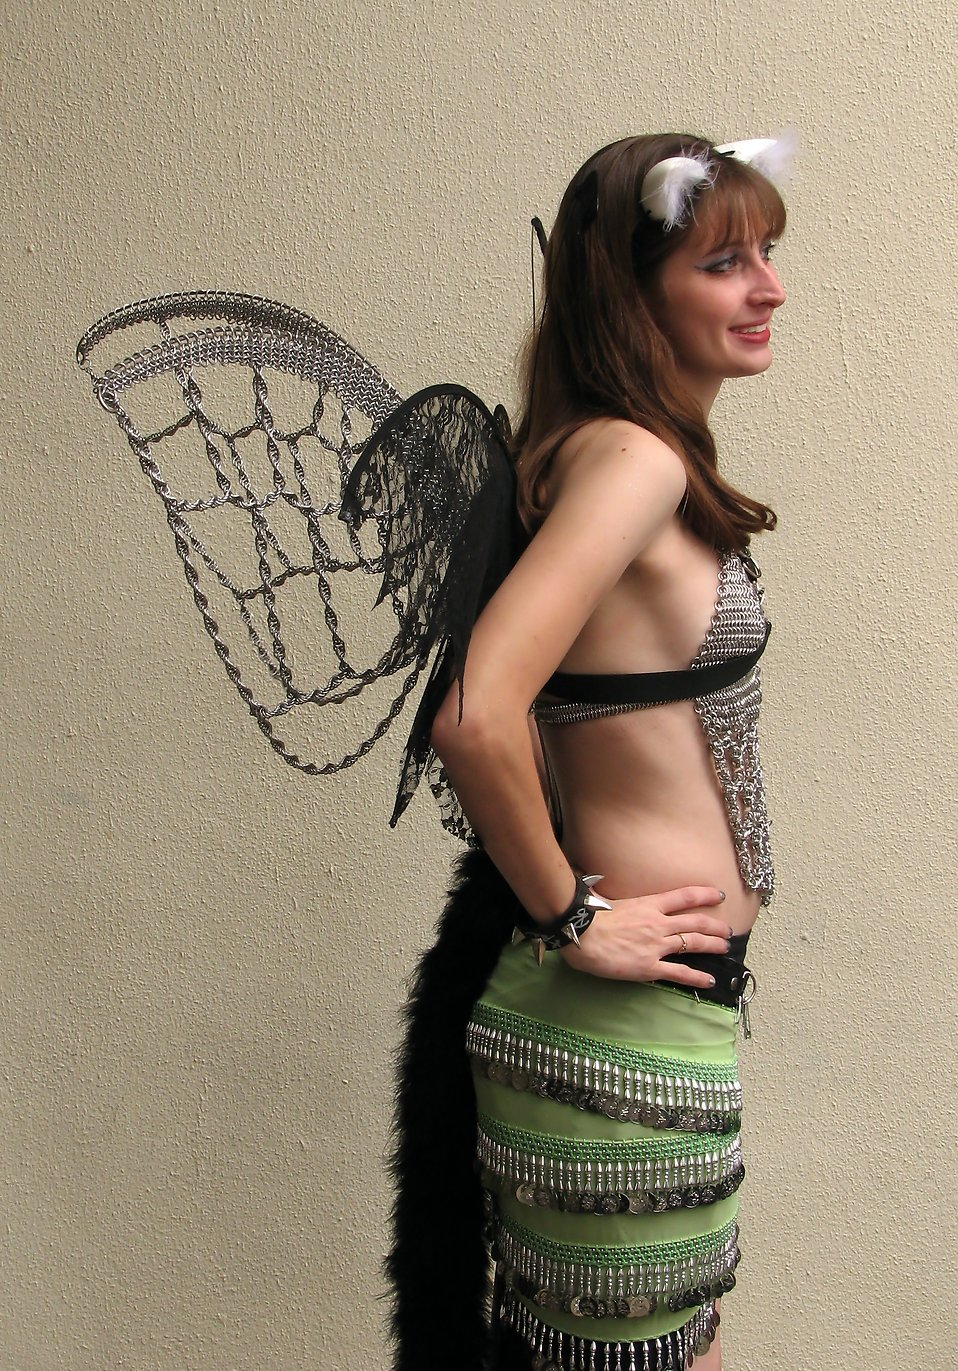 A beautiful girl in a fairy cat costume at Dragoncon 2009 in Atlanta, Georgia : Free Stock Photo